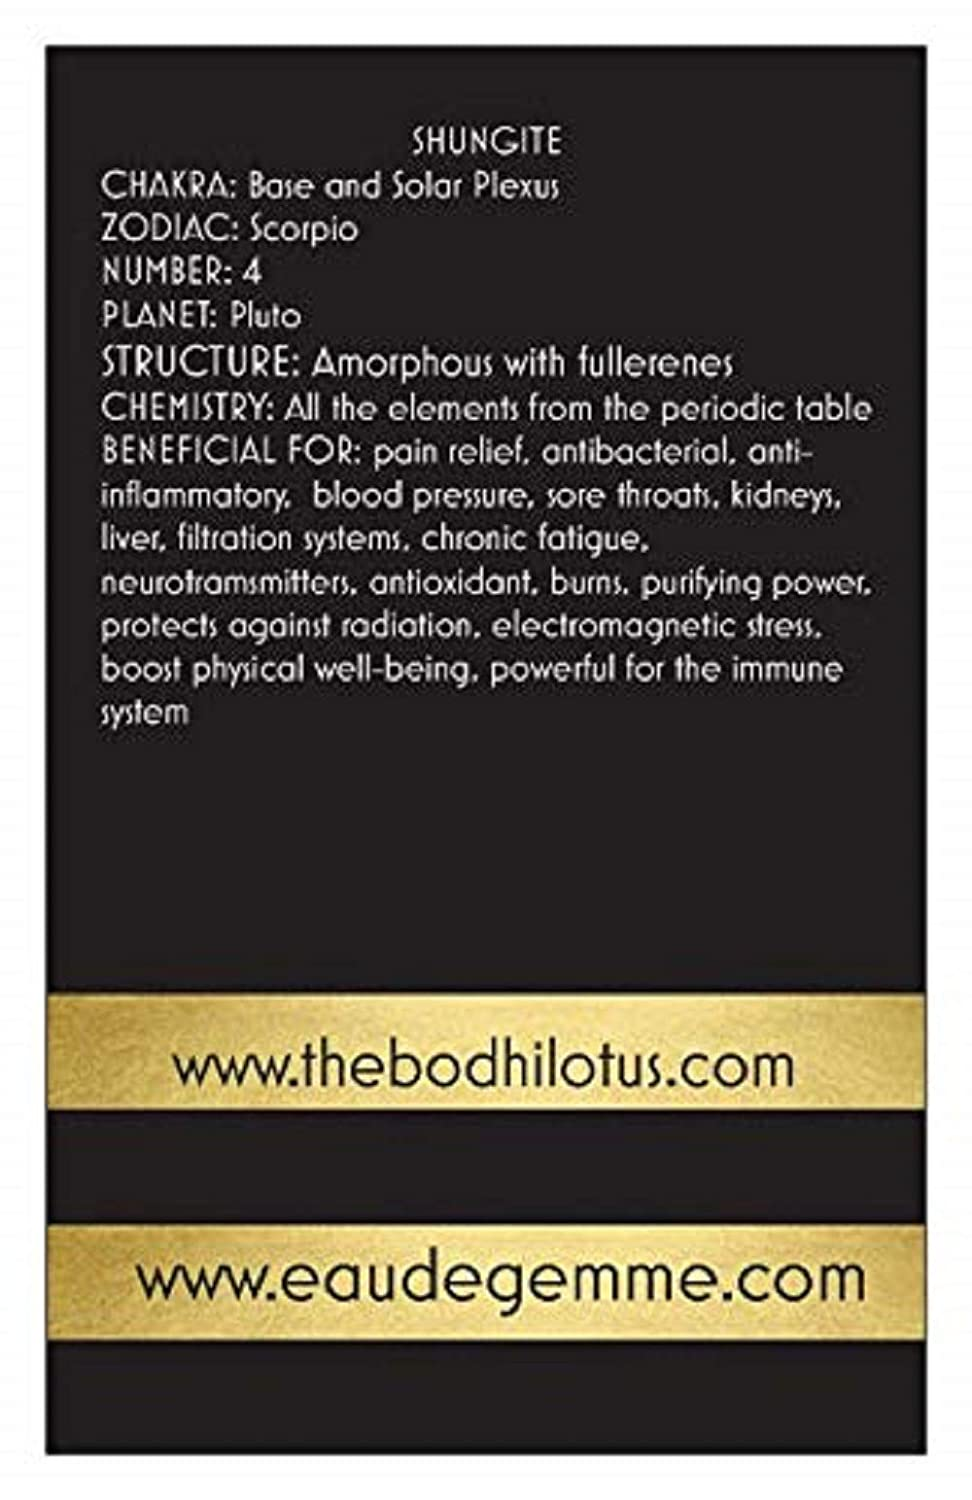 The Bodhi Lotus EAU DE GEMME Clear Quartz Shungite Gemstone Water Bottle Elixir 18 Oz Crystal Water Bottle Sports Crystal Clear Water Bottle With Shungite